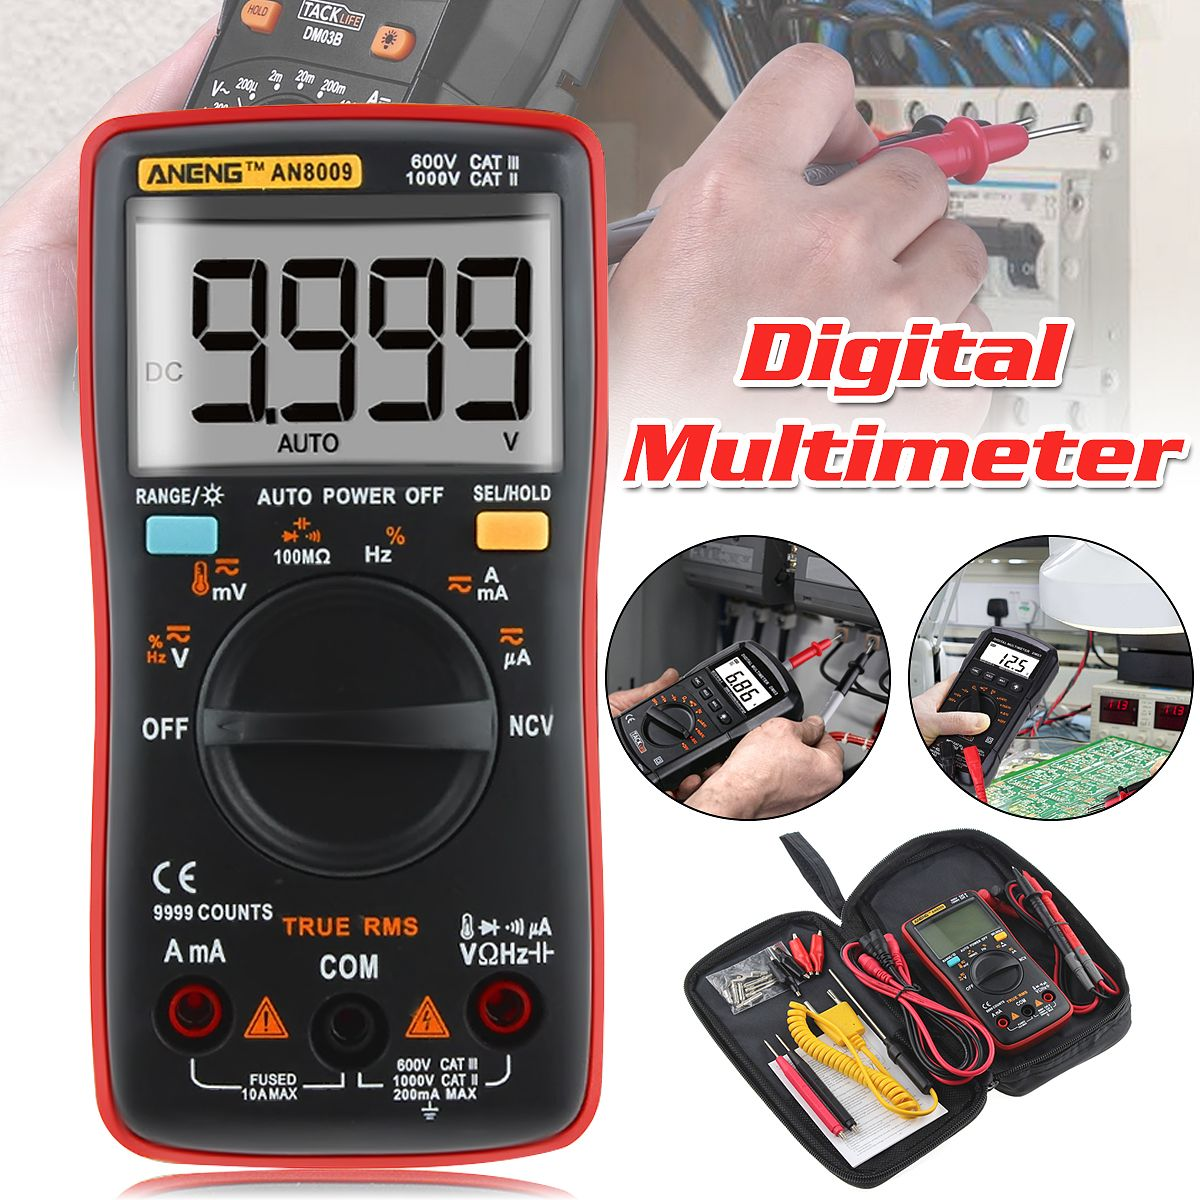 ANENG AN8009 Digital Multimeter True RMS NCV Backlight Ammeter Voltmeter Auto Range 9999 Counts AC/DC Current